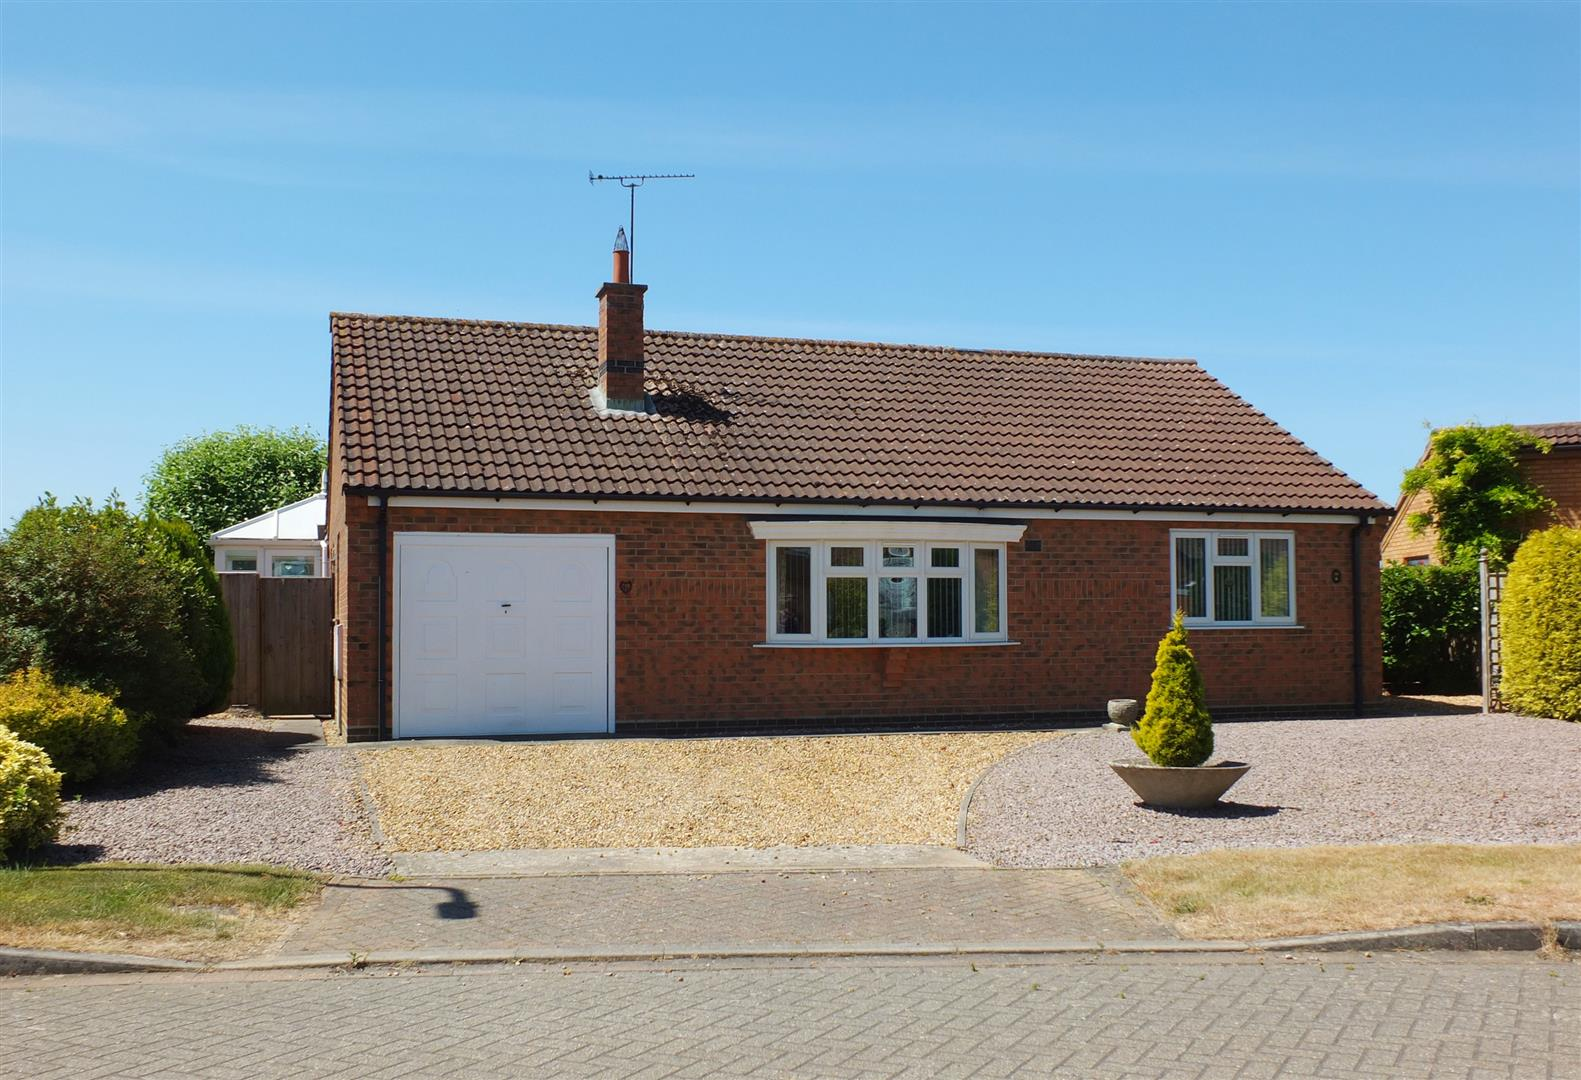 2 bed detached bungalow for sale in Lutton Spalding, PE12 9LX  - Property Image 1